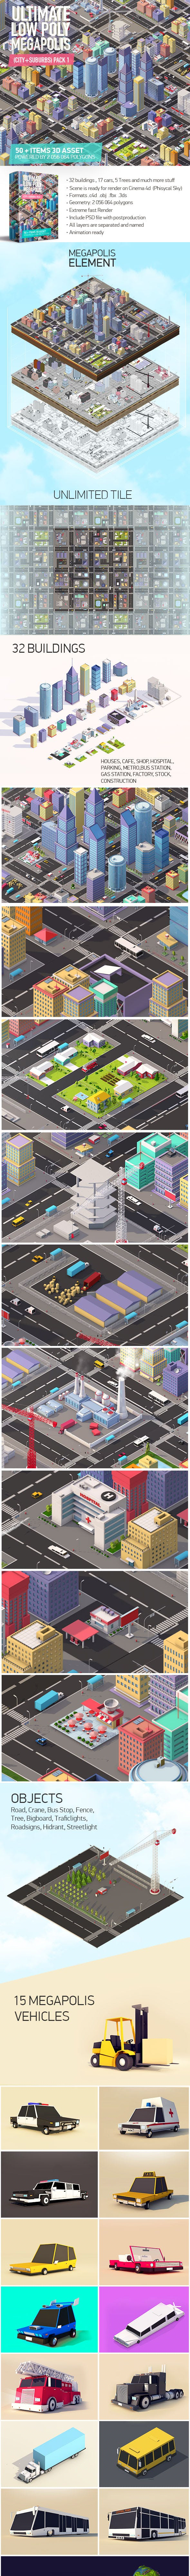 Ultimate Low Poly Megapolis (City + Suburbs) Pack 1 - 3DOcean Item for Sale